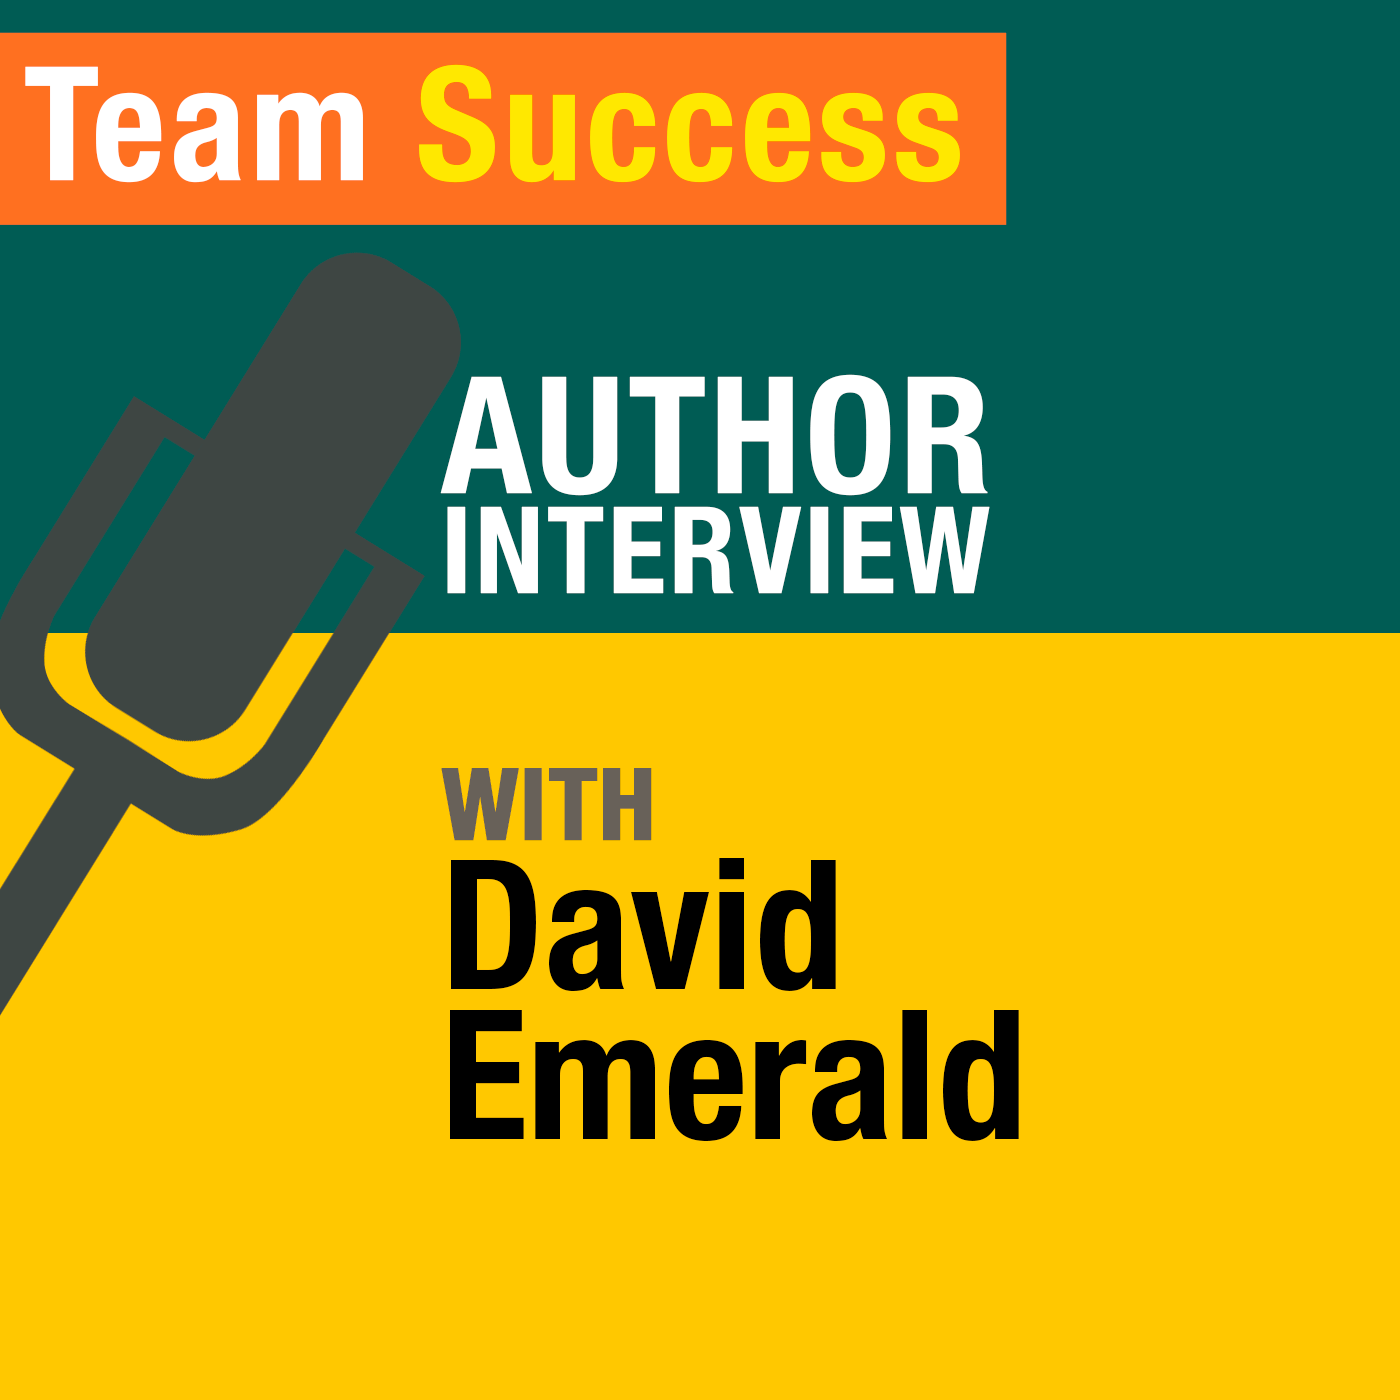 Shifting From Victim To Creator with The Power of TED Author David Emerald